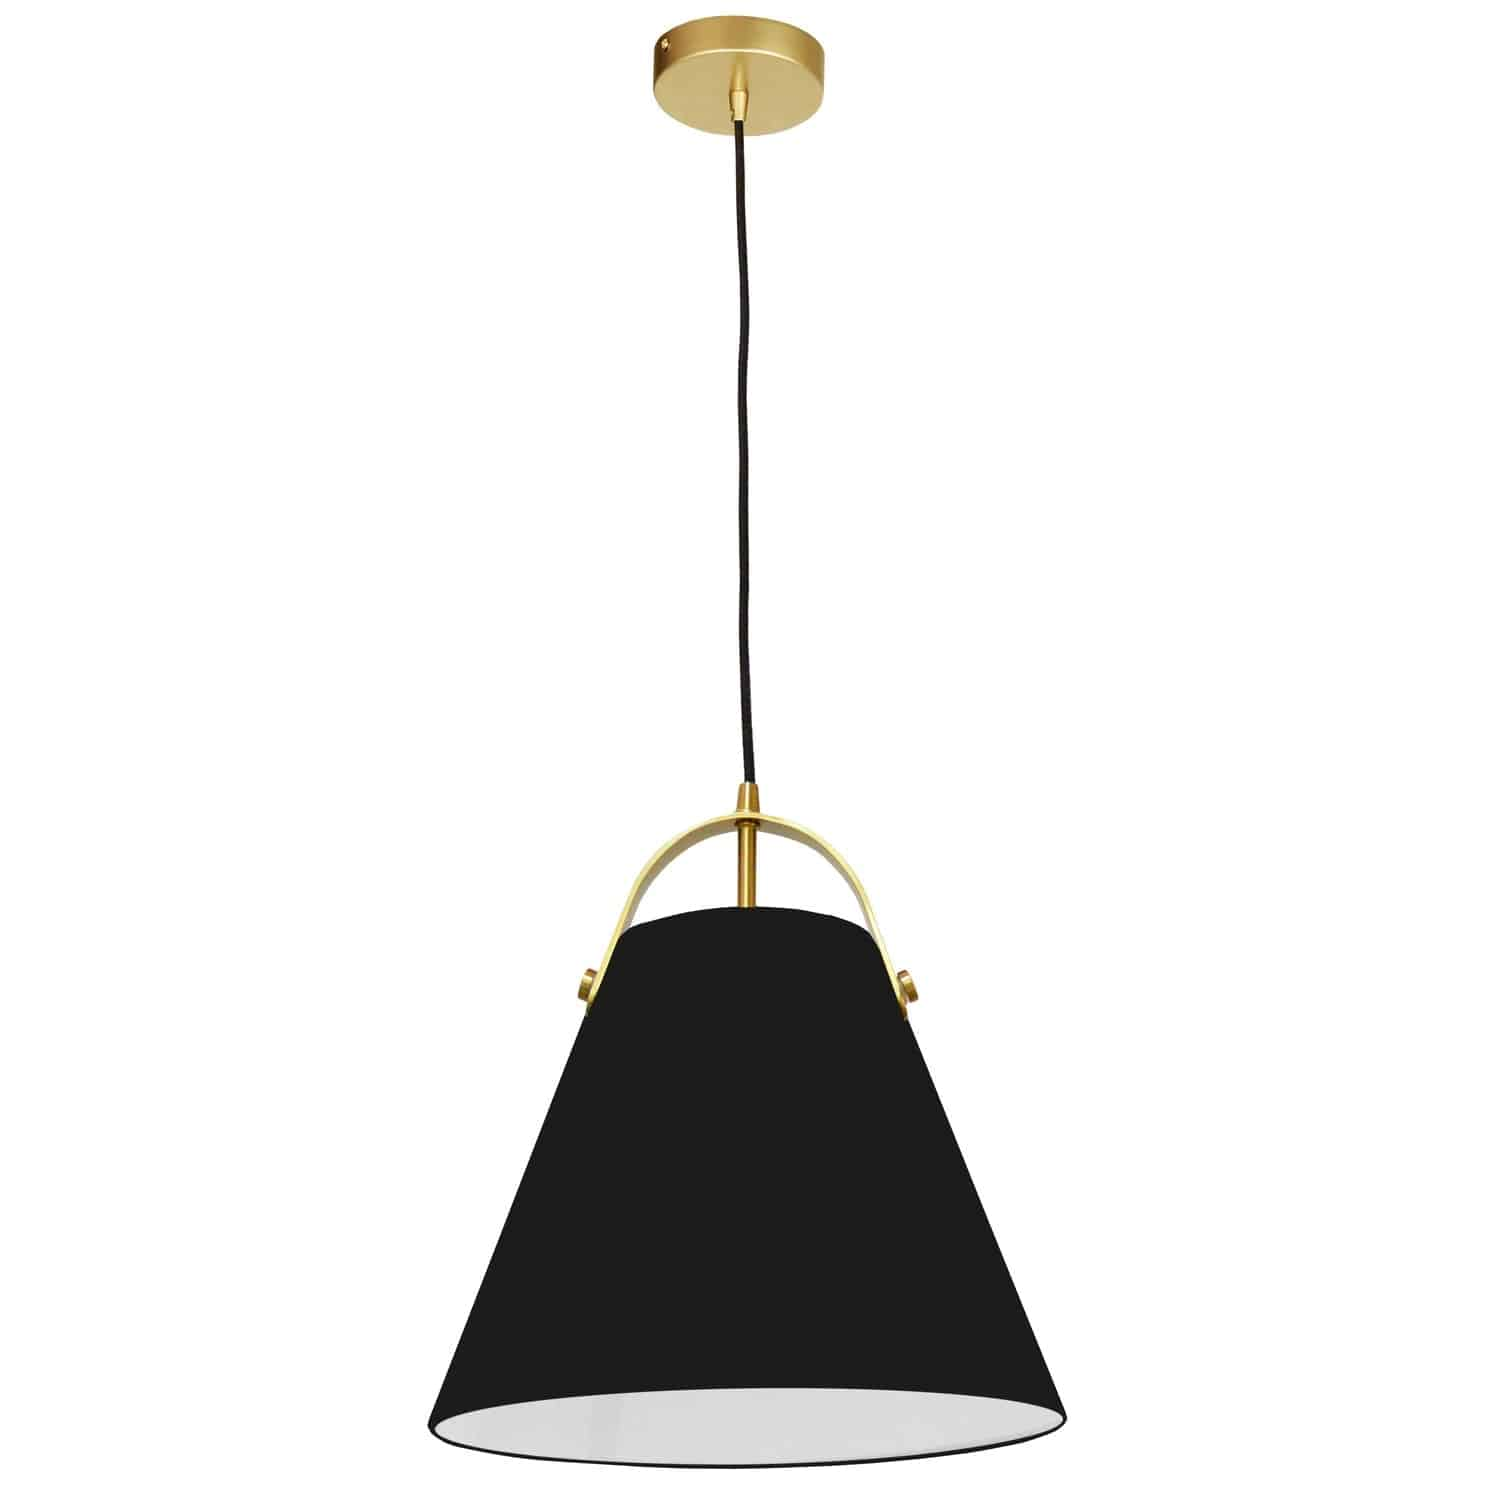 1 Light Emperor Pendant Aged Brass with Black Shade